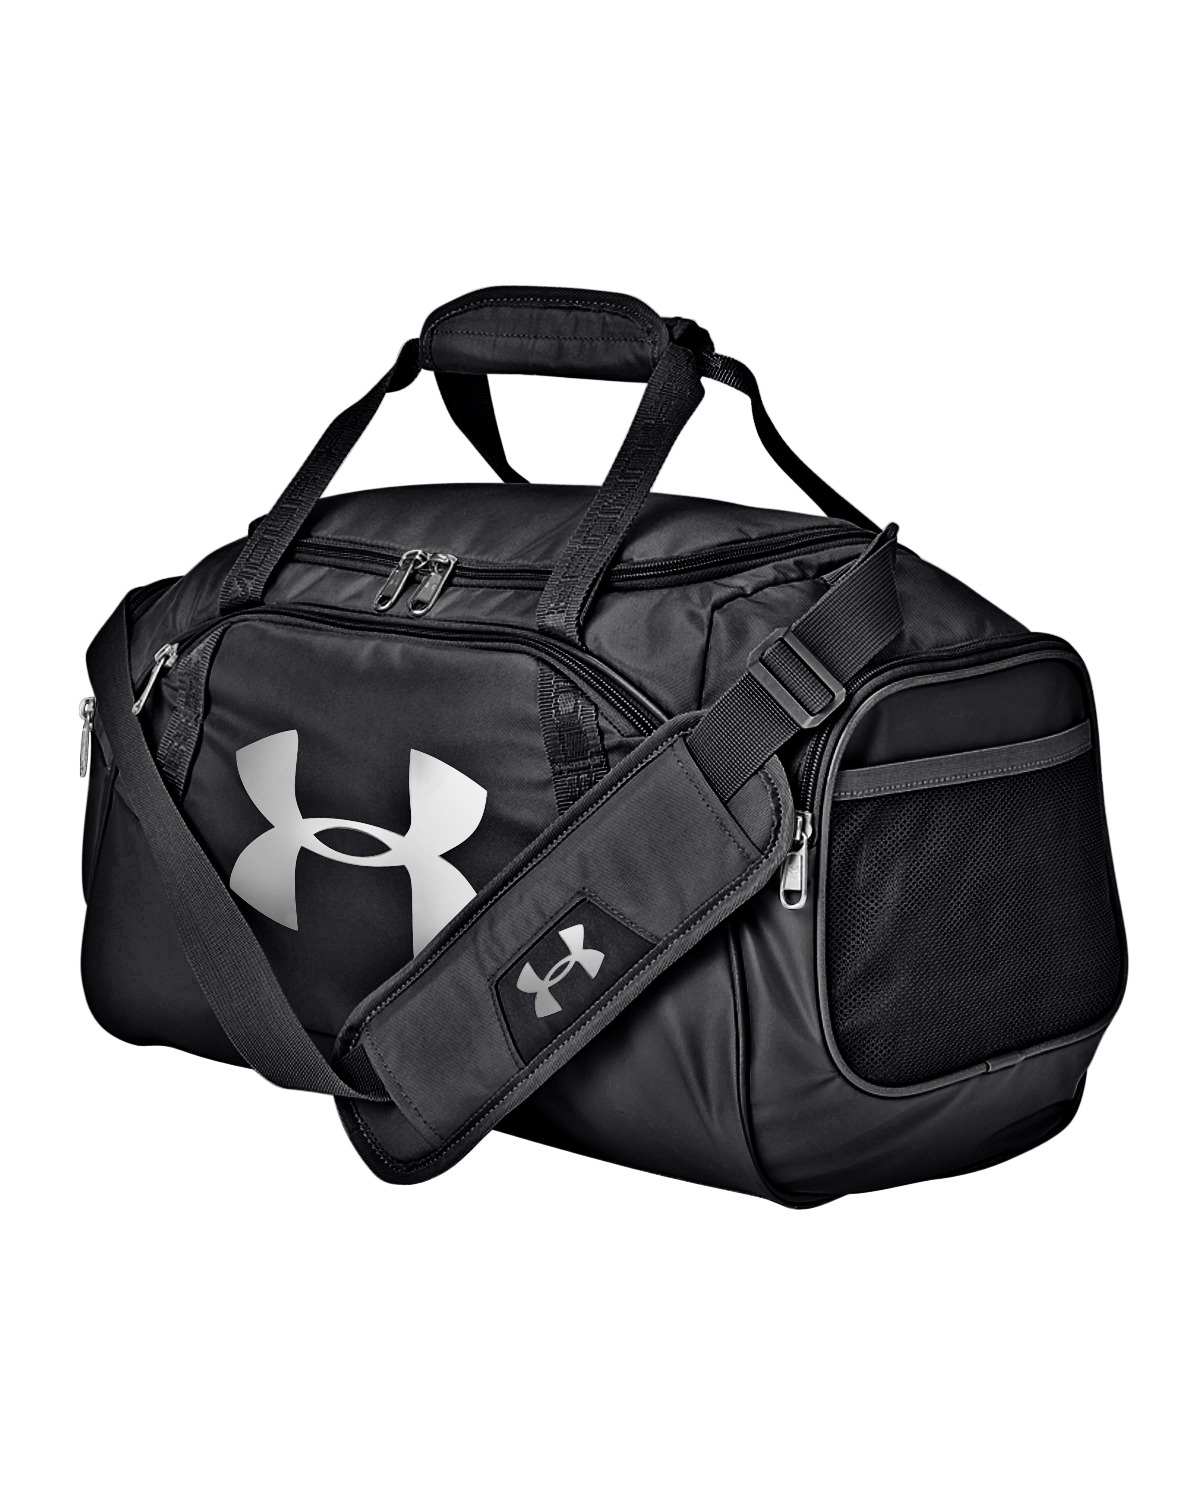 Under Armour 1301391 - UA Undeniable Duffle Extra-Small